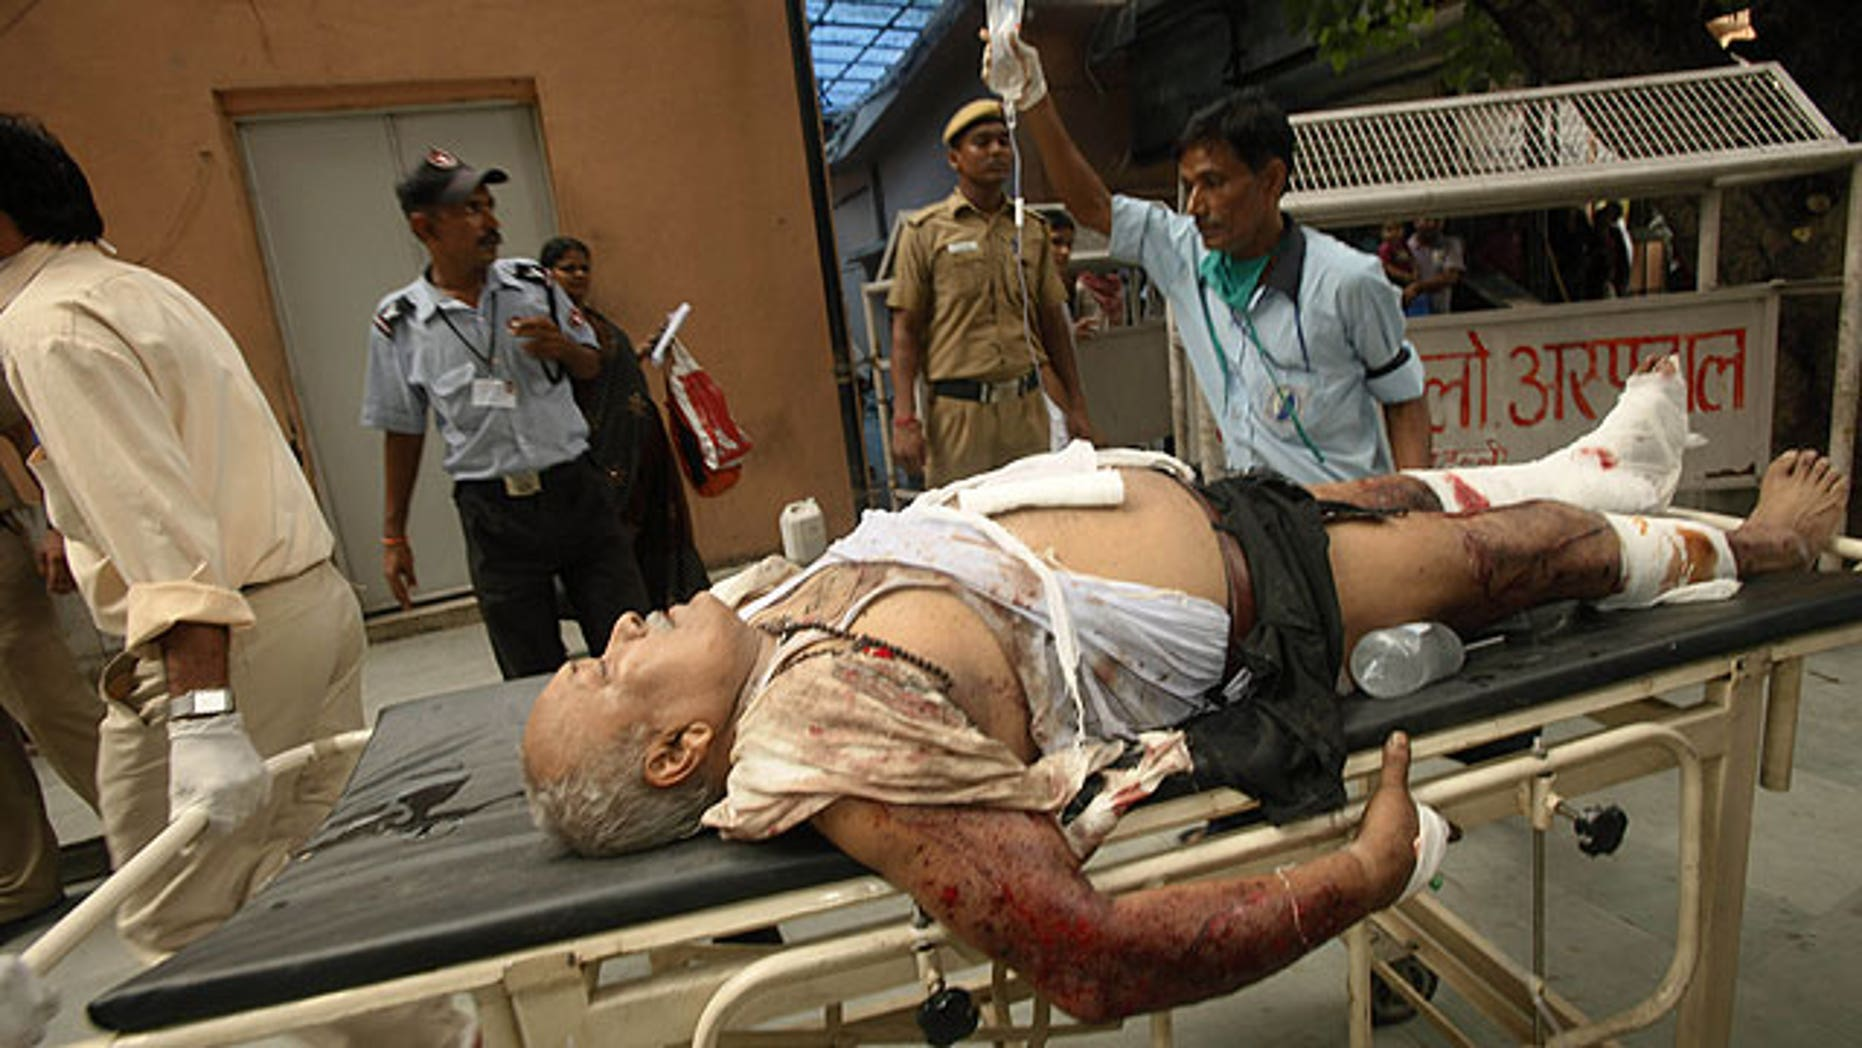 September 7: A man injured in bomb blast is brought to the RML hospital in New Delhi, India.